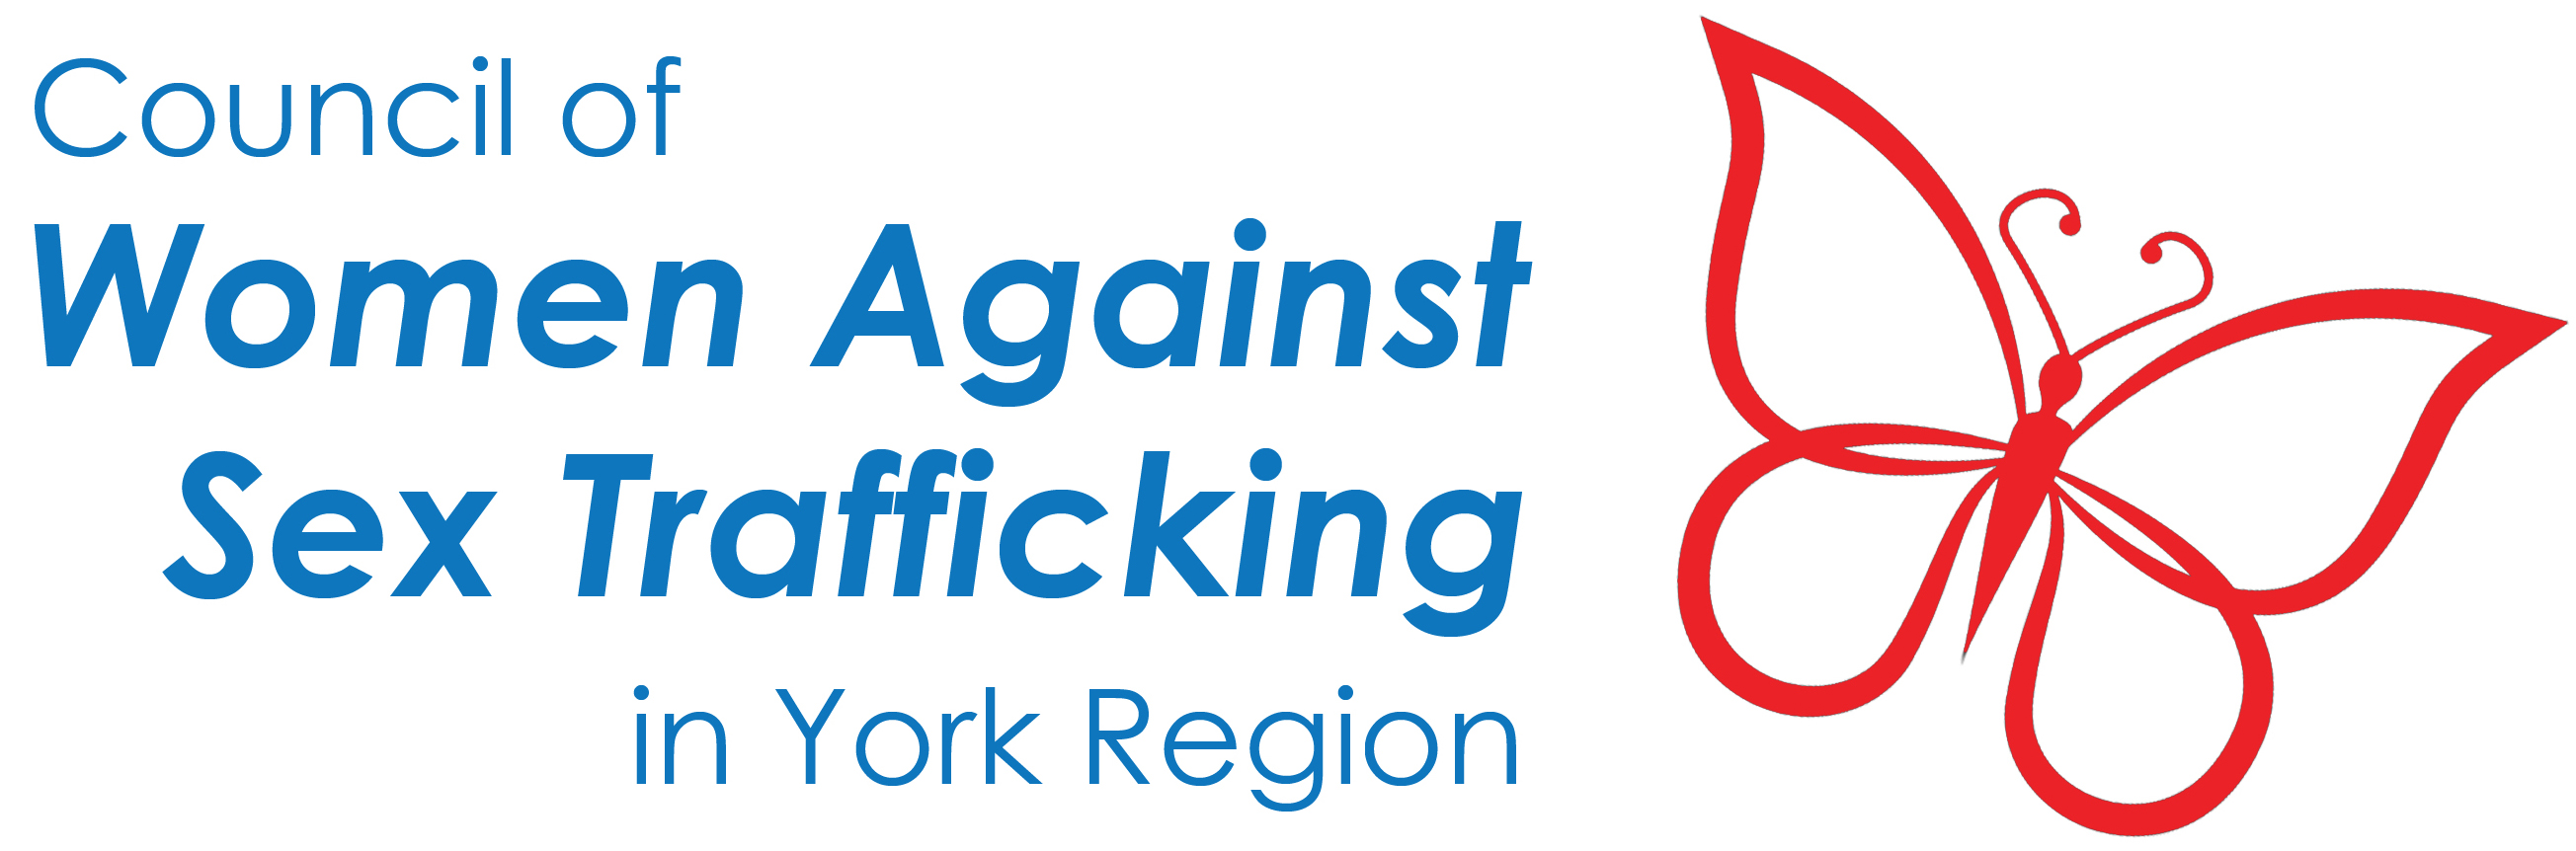 Council of Women Against Sex Trafficking logo 2